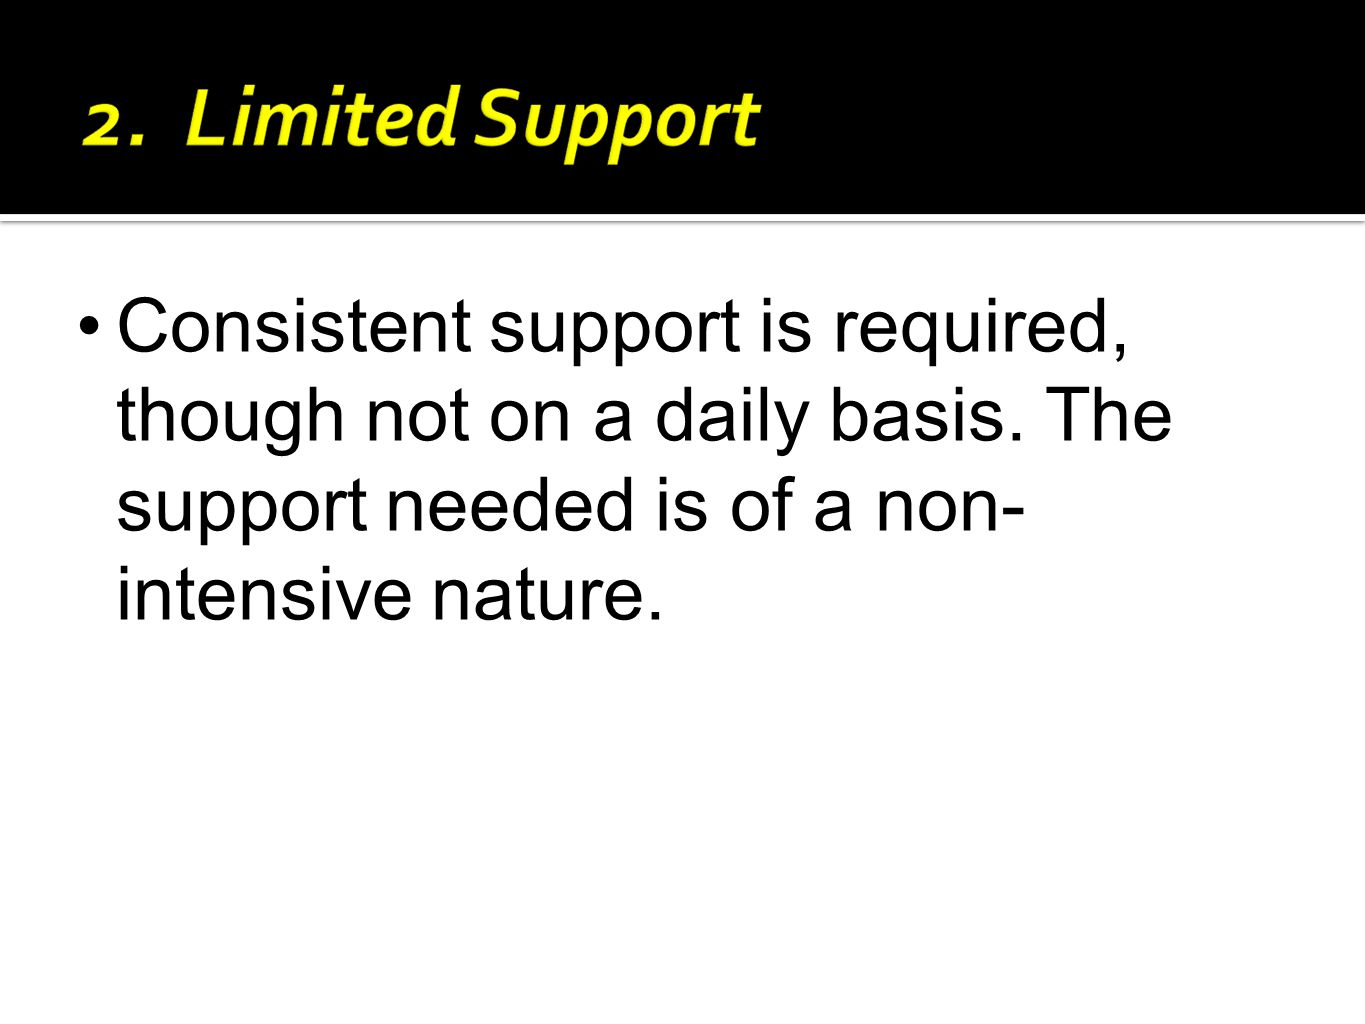 Consistent support is required, though not on a daily basis.